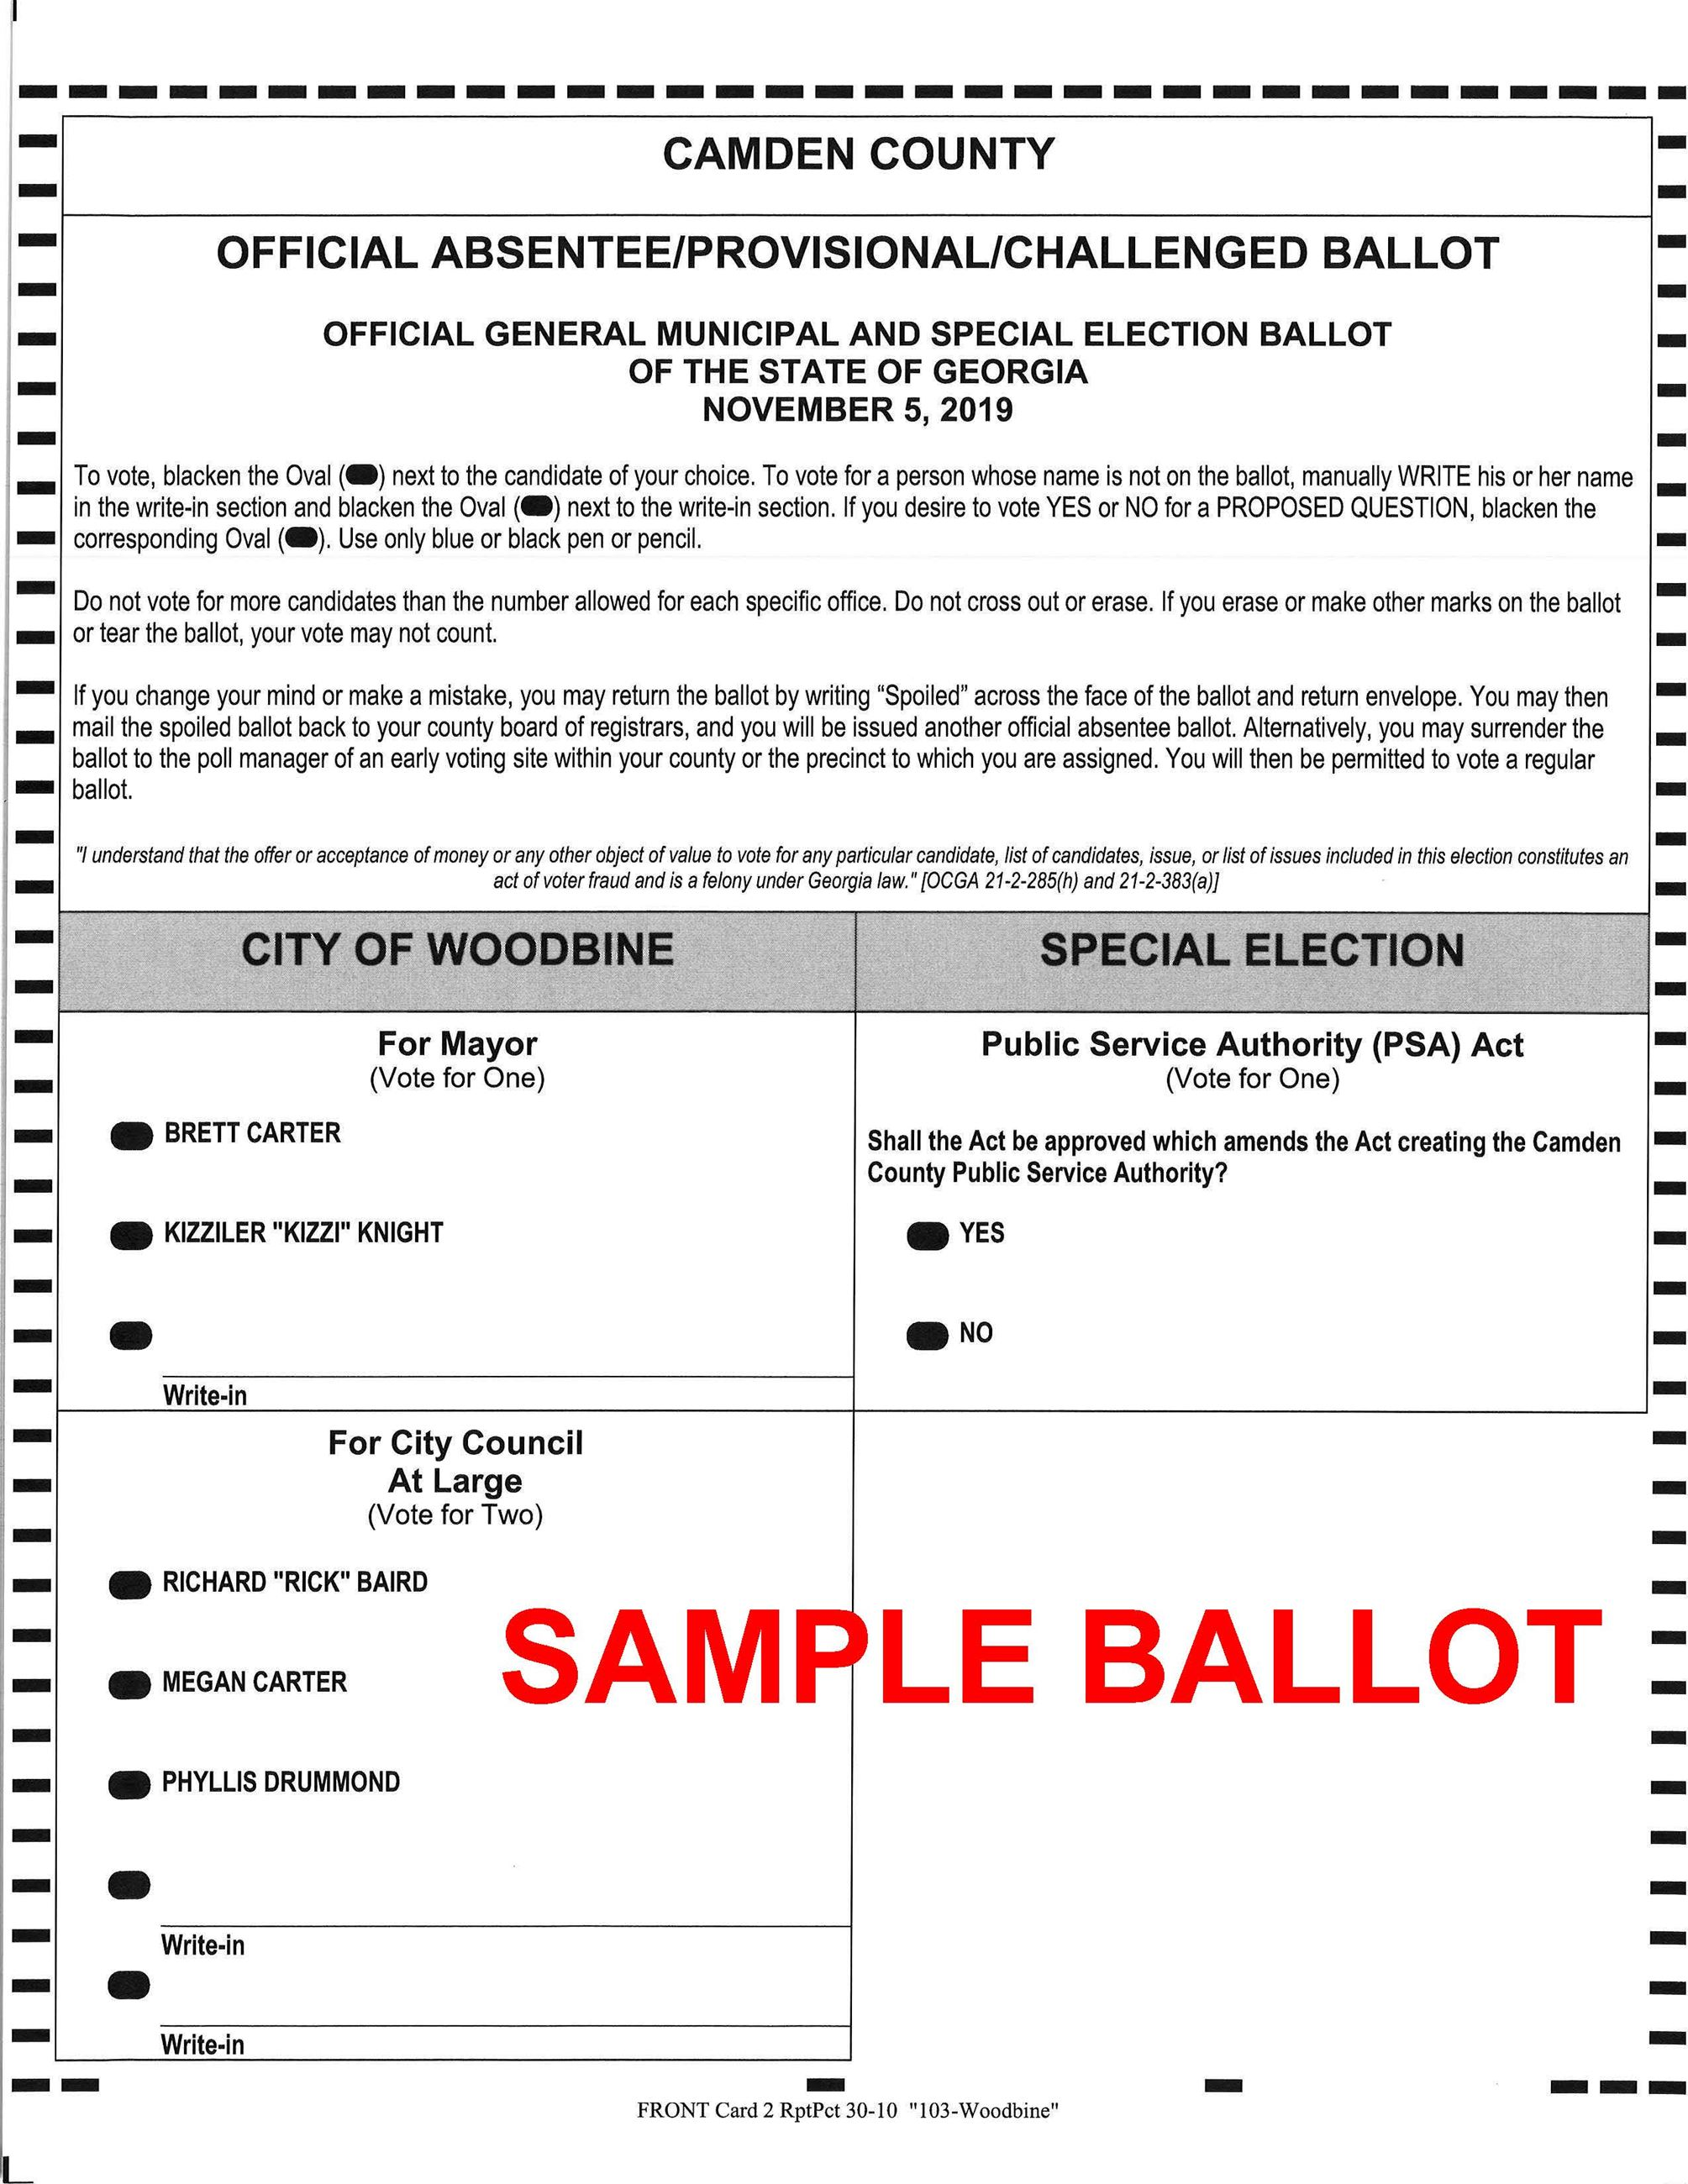 11 05 2019 City of Woodbine SAMPLE Ballot Opens in new window